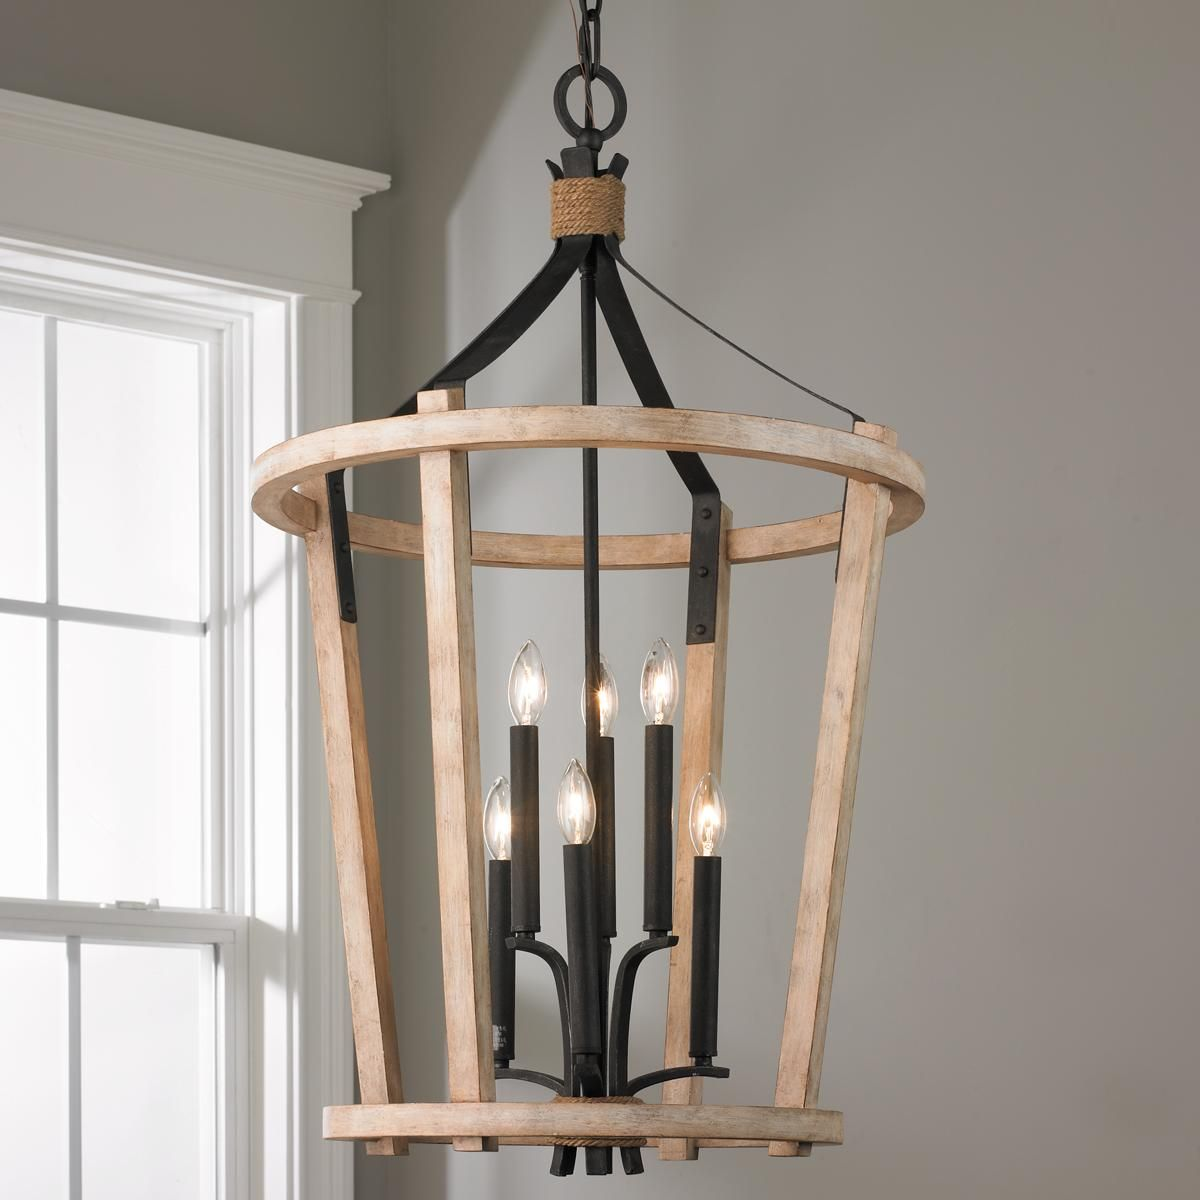 Bound Rustic Cottage Lantern Large Foyer Decorating Rustic Cottage Rustic Lamps